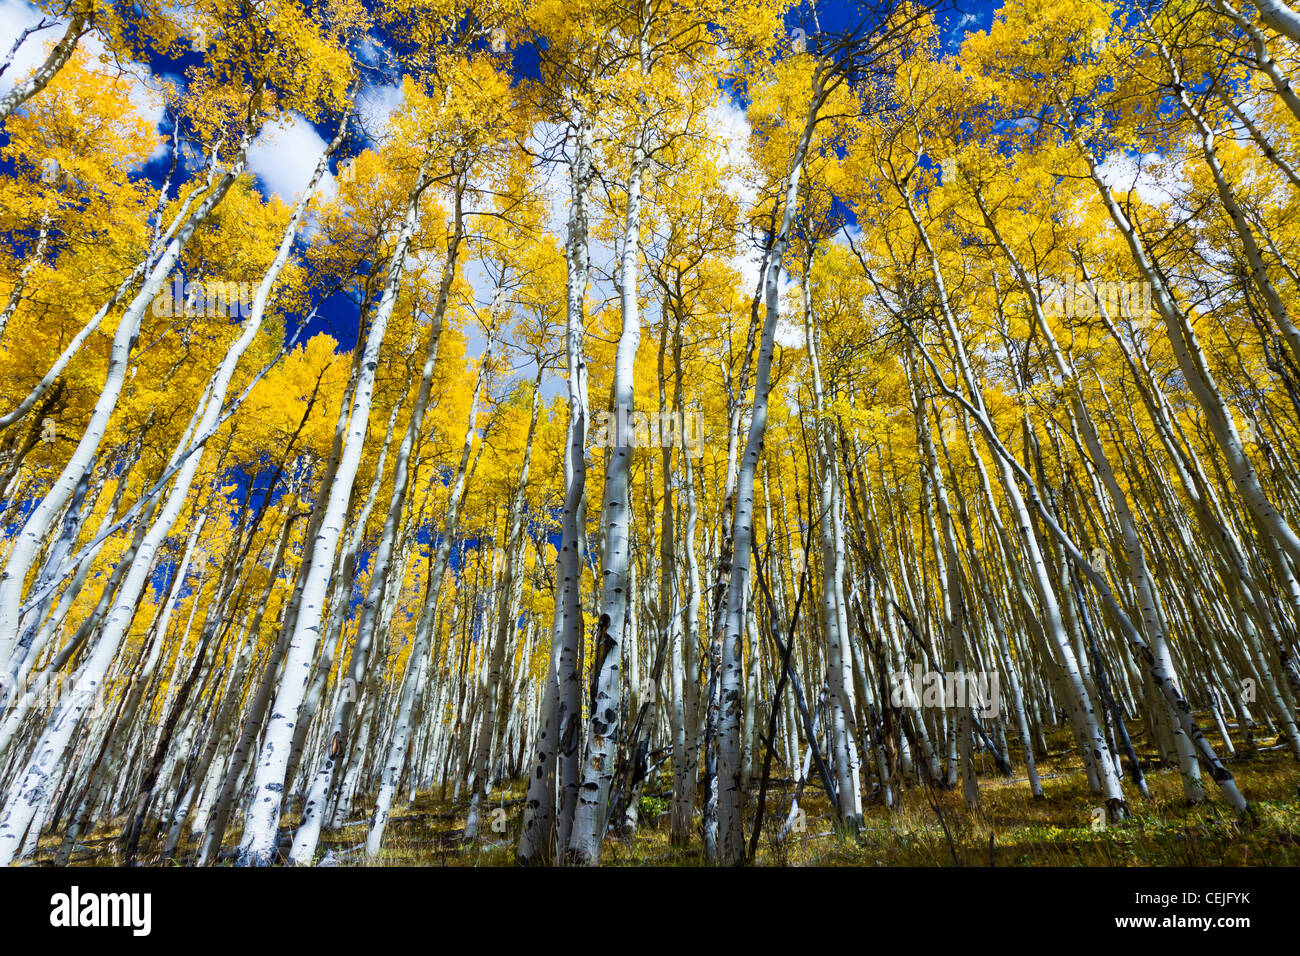 Tall yellow aspen trees contrast against the blue sky in the Colorado Rocky Mountains. - Stock Image